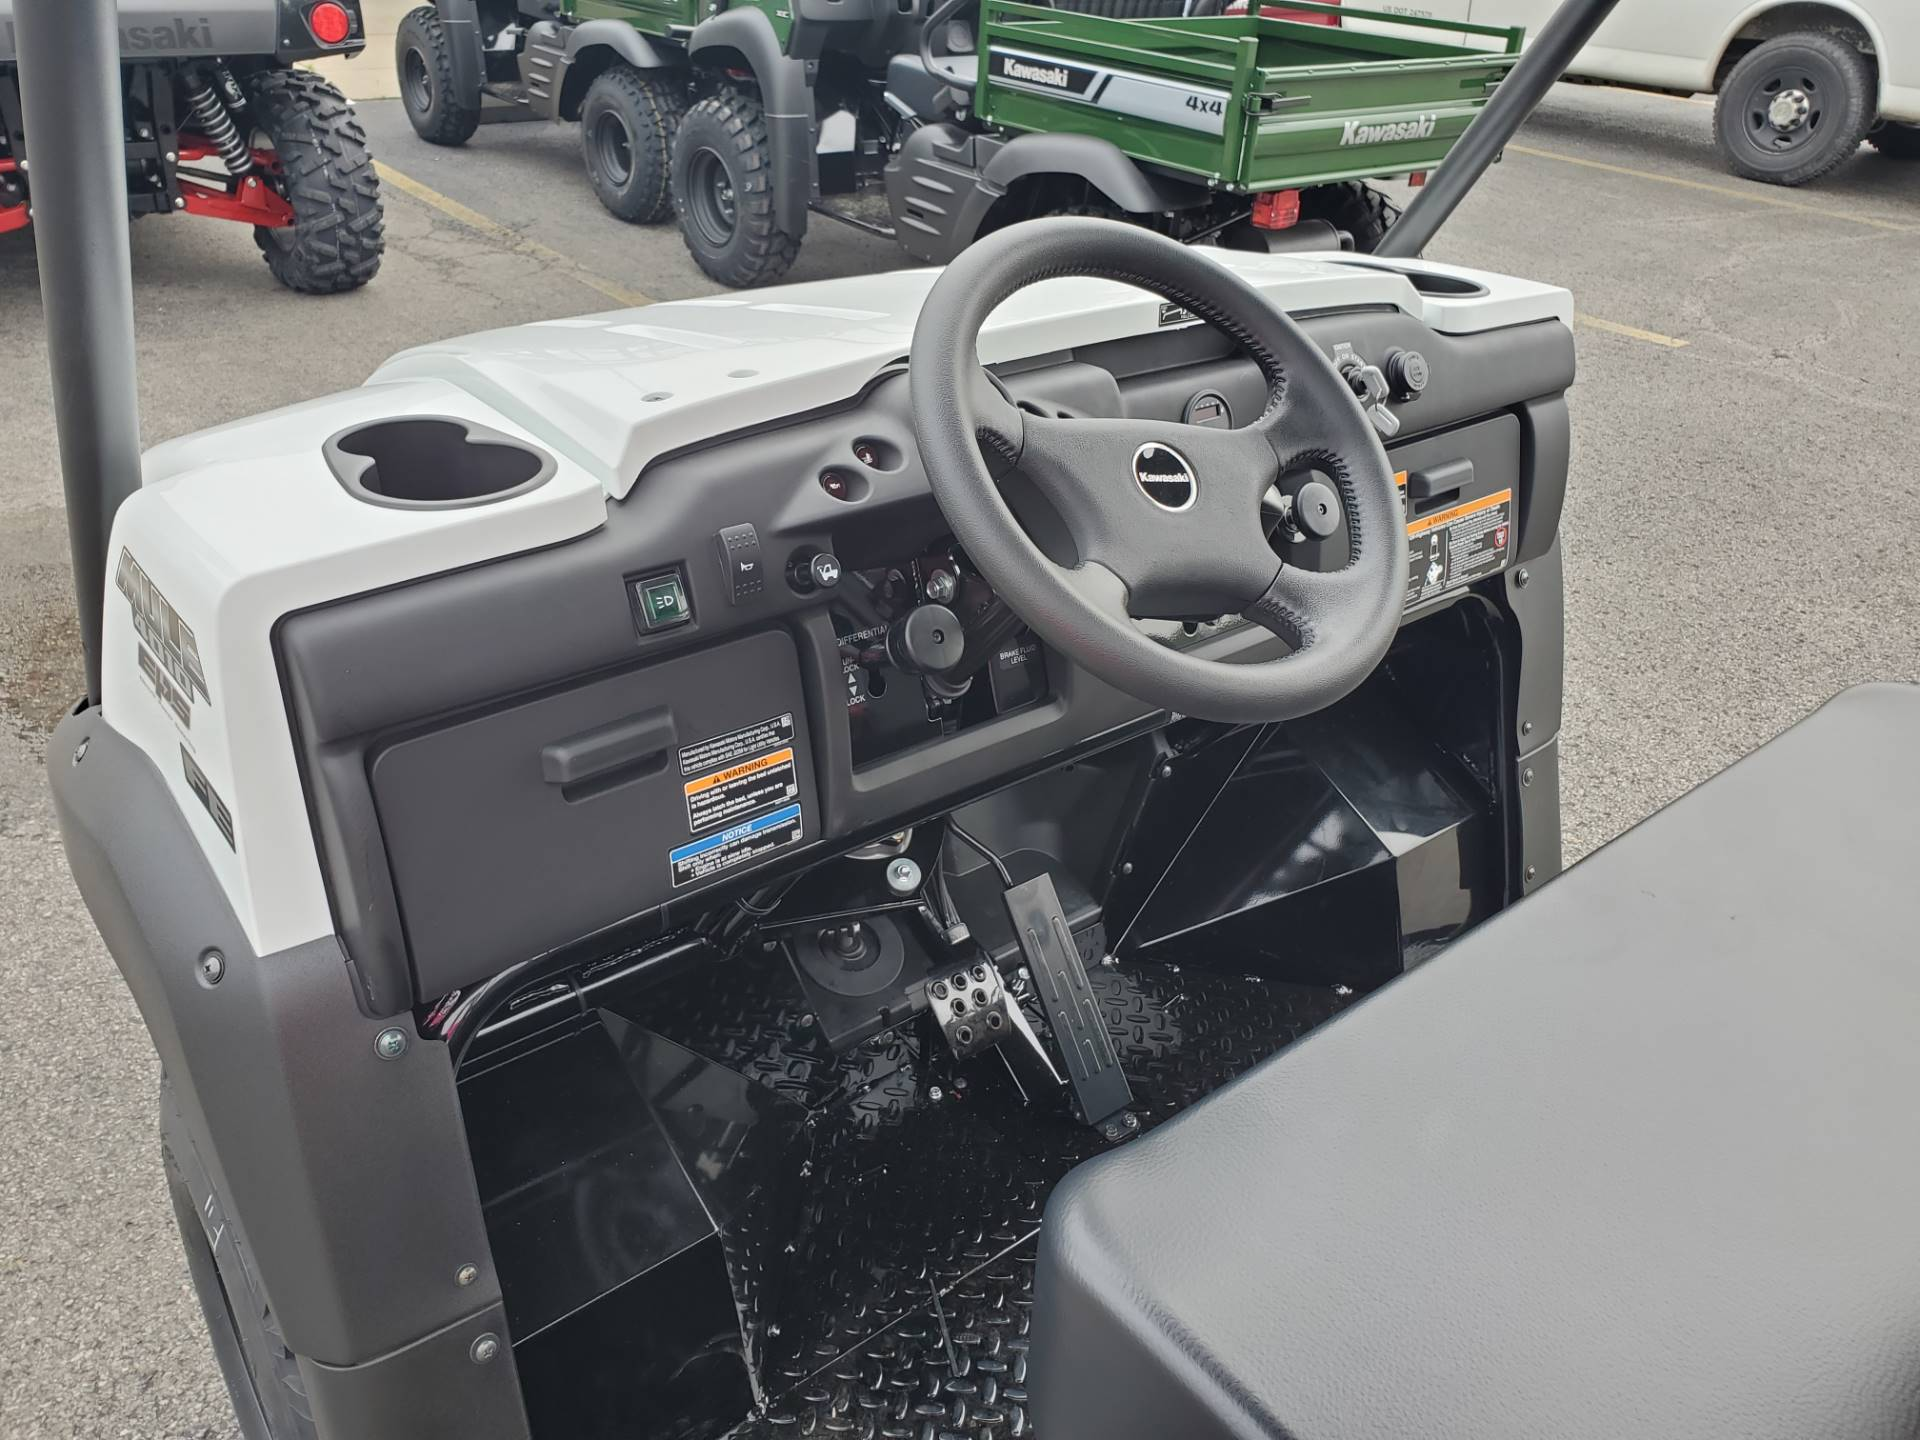 2021 Kawasaki Mule 4010 4x4 FE in Herrin, Illinois - Photo 13